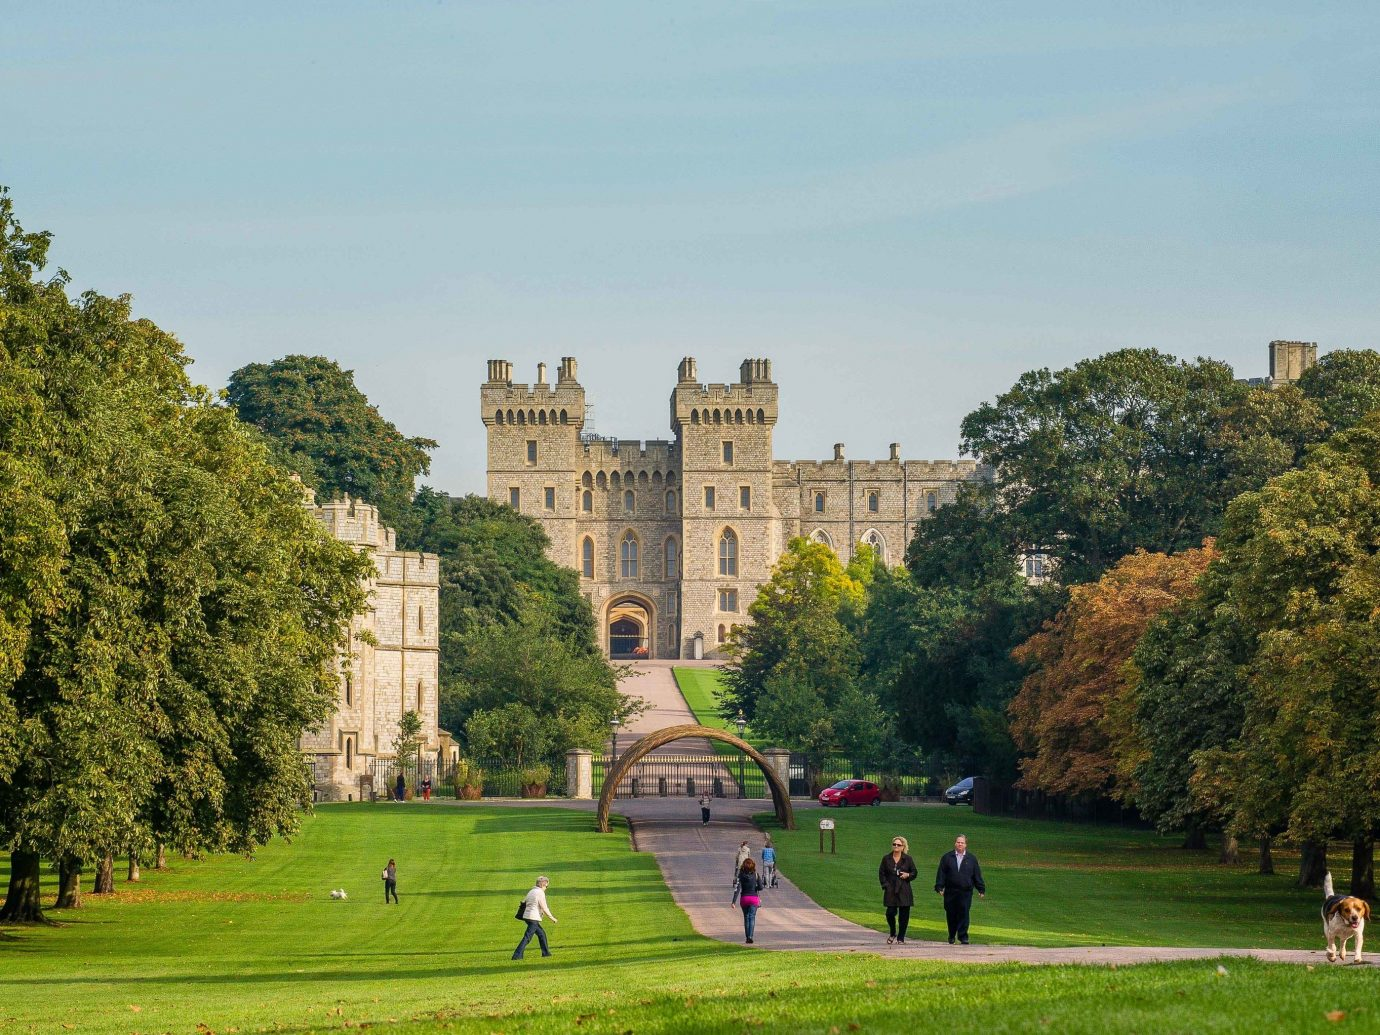 England europe London Trip Ideas Nature green stately home tree landmark sky woody plant grass leaf estate plant national trust for places of historic interest or natural beauty Garden daytime castle château park meadow building lawn landscape palace recreation City campus field university